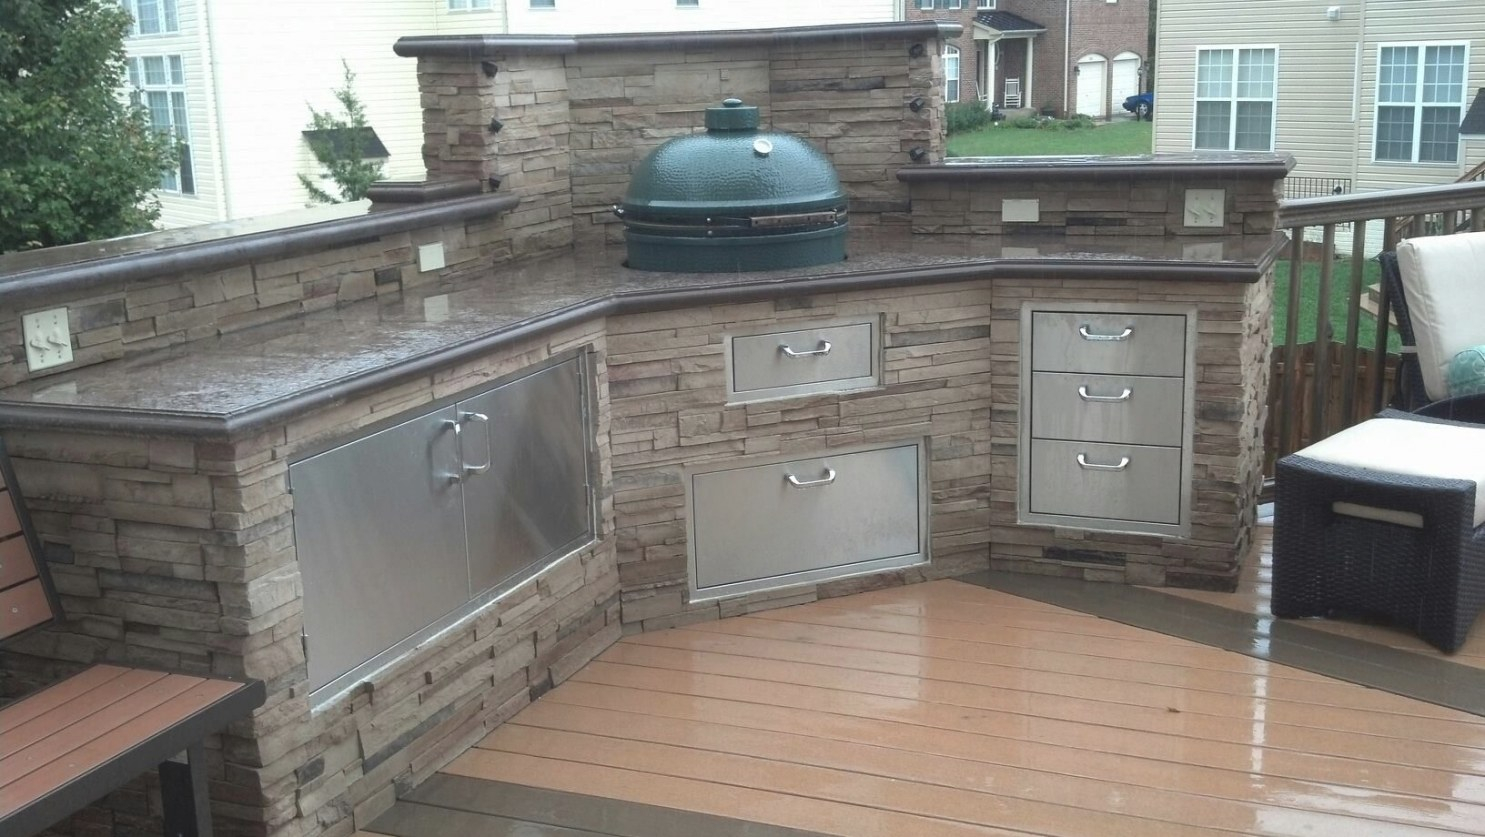 Bge Island | Big Green Egg Outdoor Kitchen, Outdoor Kitchen pertaining to Big Green Egg Outdoor Kitchen